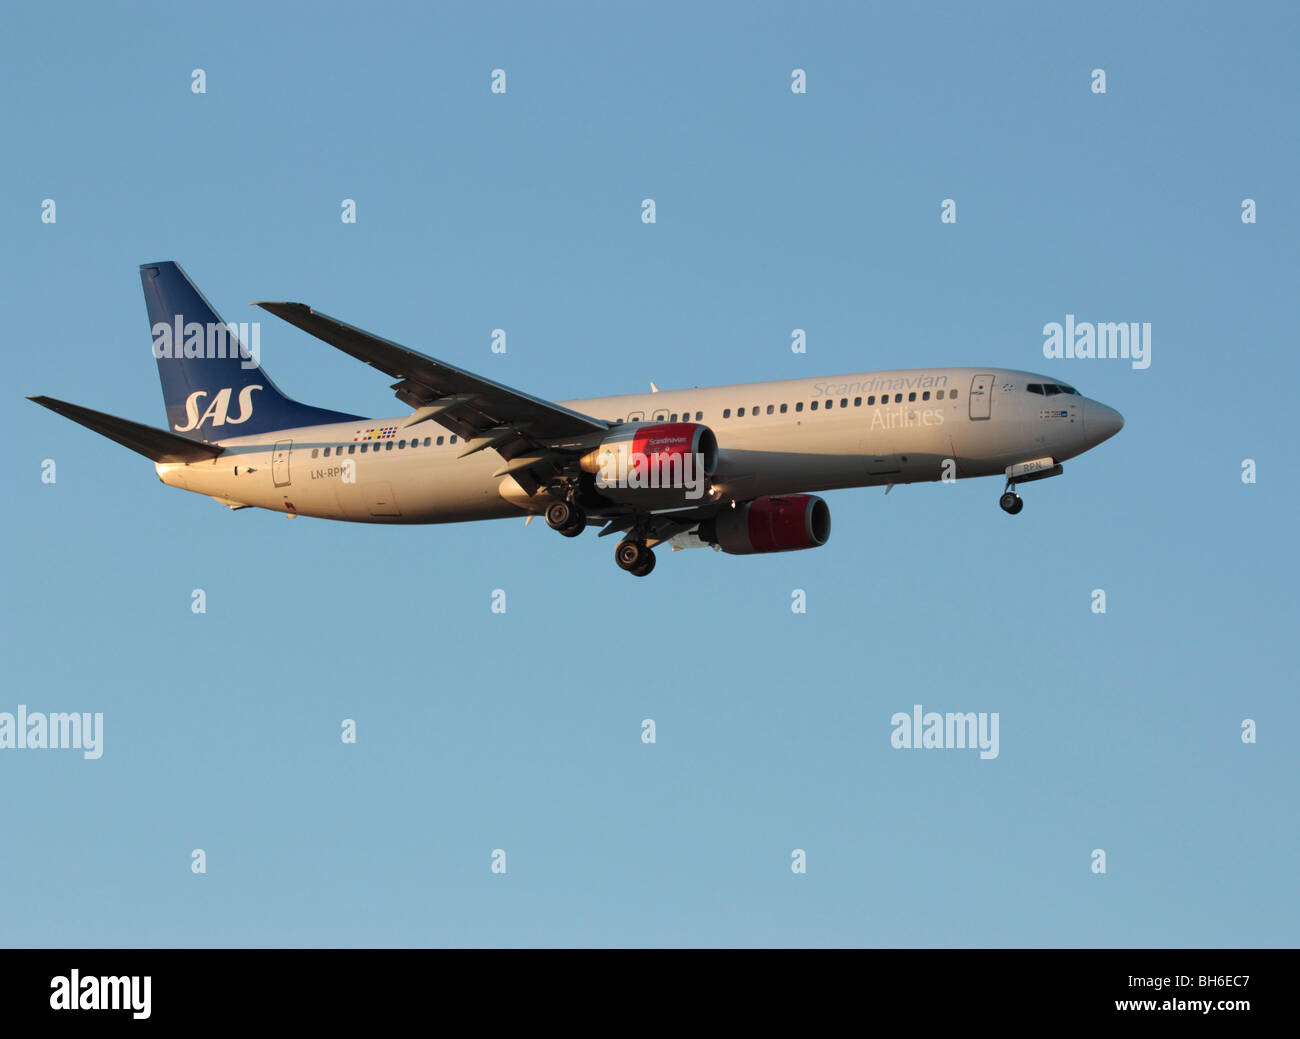 SAS Boeing 737-800 on arrival at sunset - Stock Image